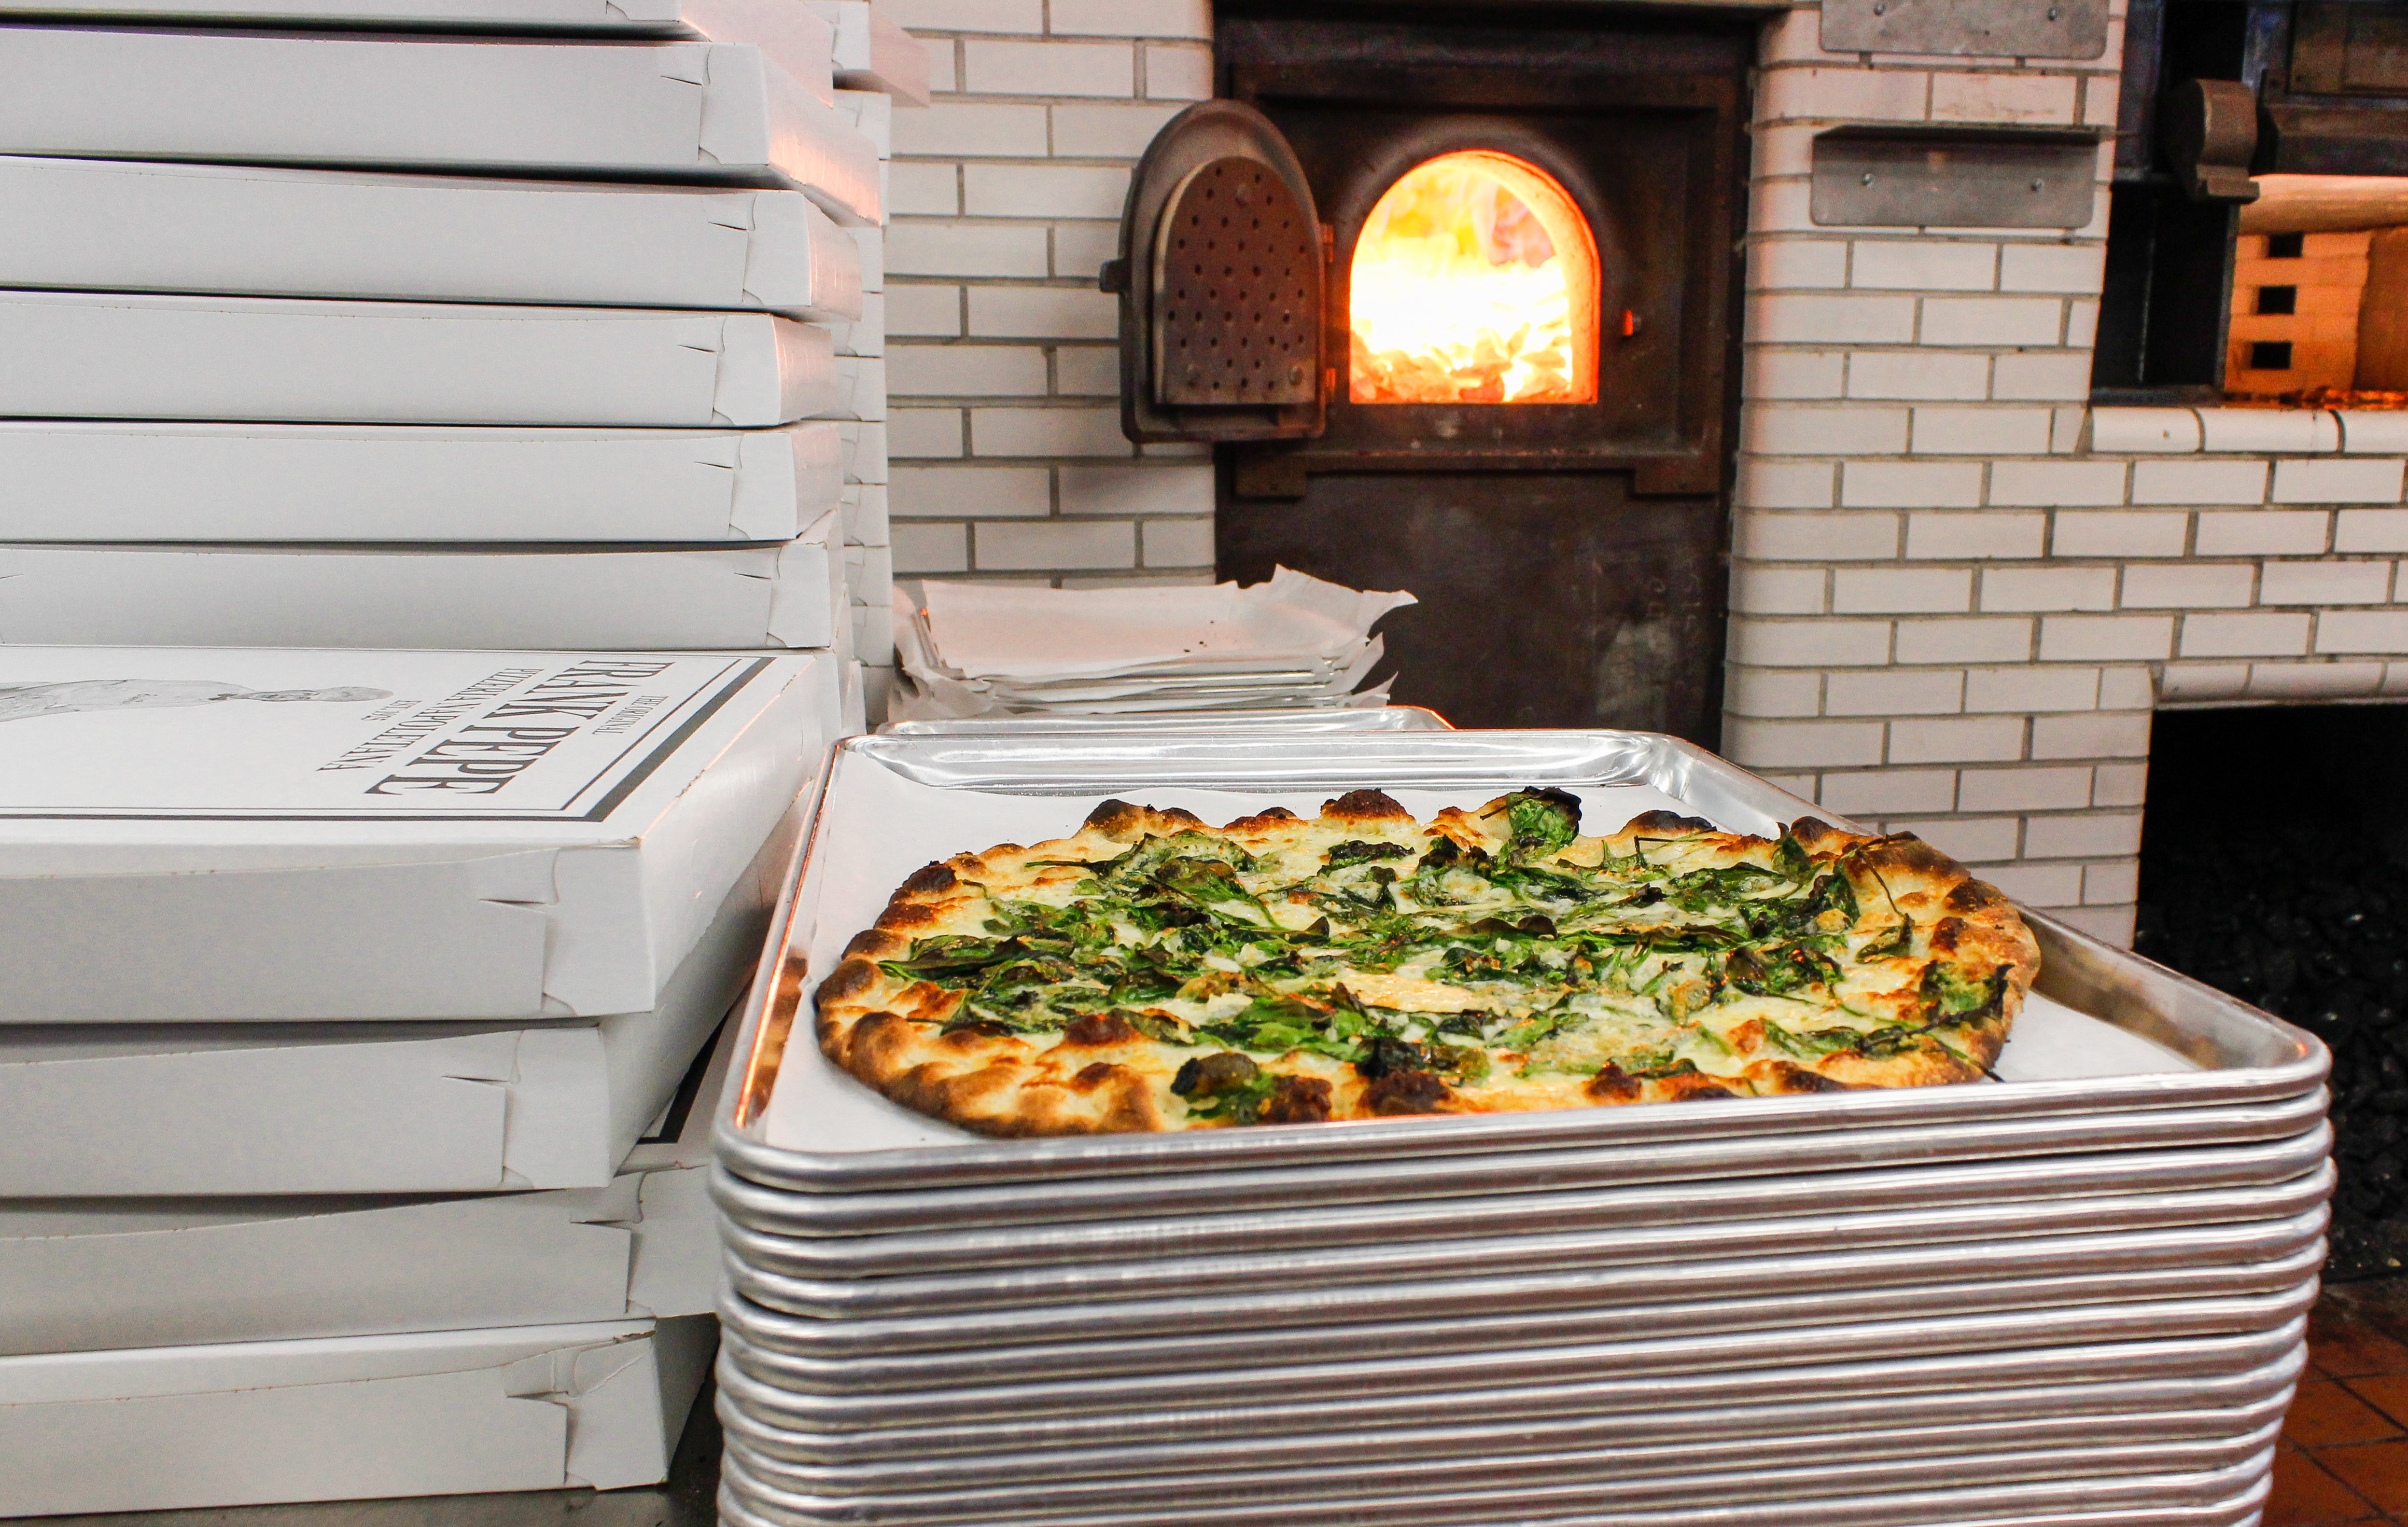 A New Haven-style pizza with a charred crust sits on a stack of metal trays, next to a stack of pizza boxes, in front of a lit pizza oven